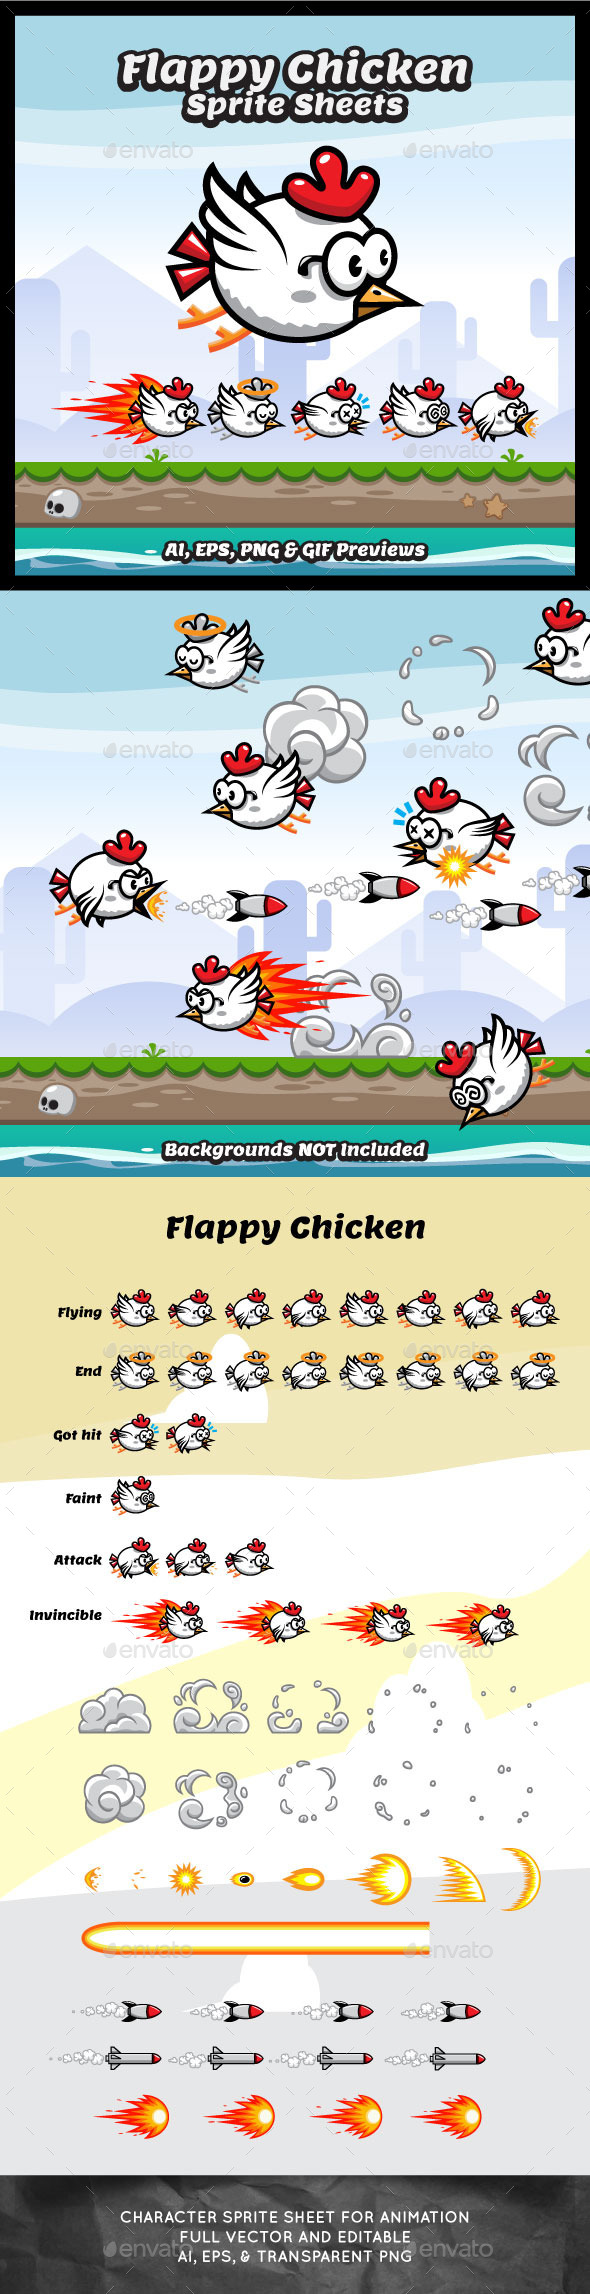 Game Sprite Sheets Flappy Chicken - Sprites Game Assets